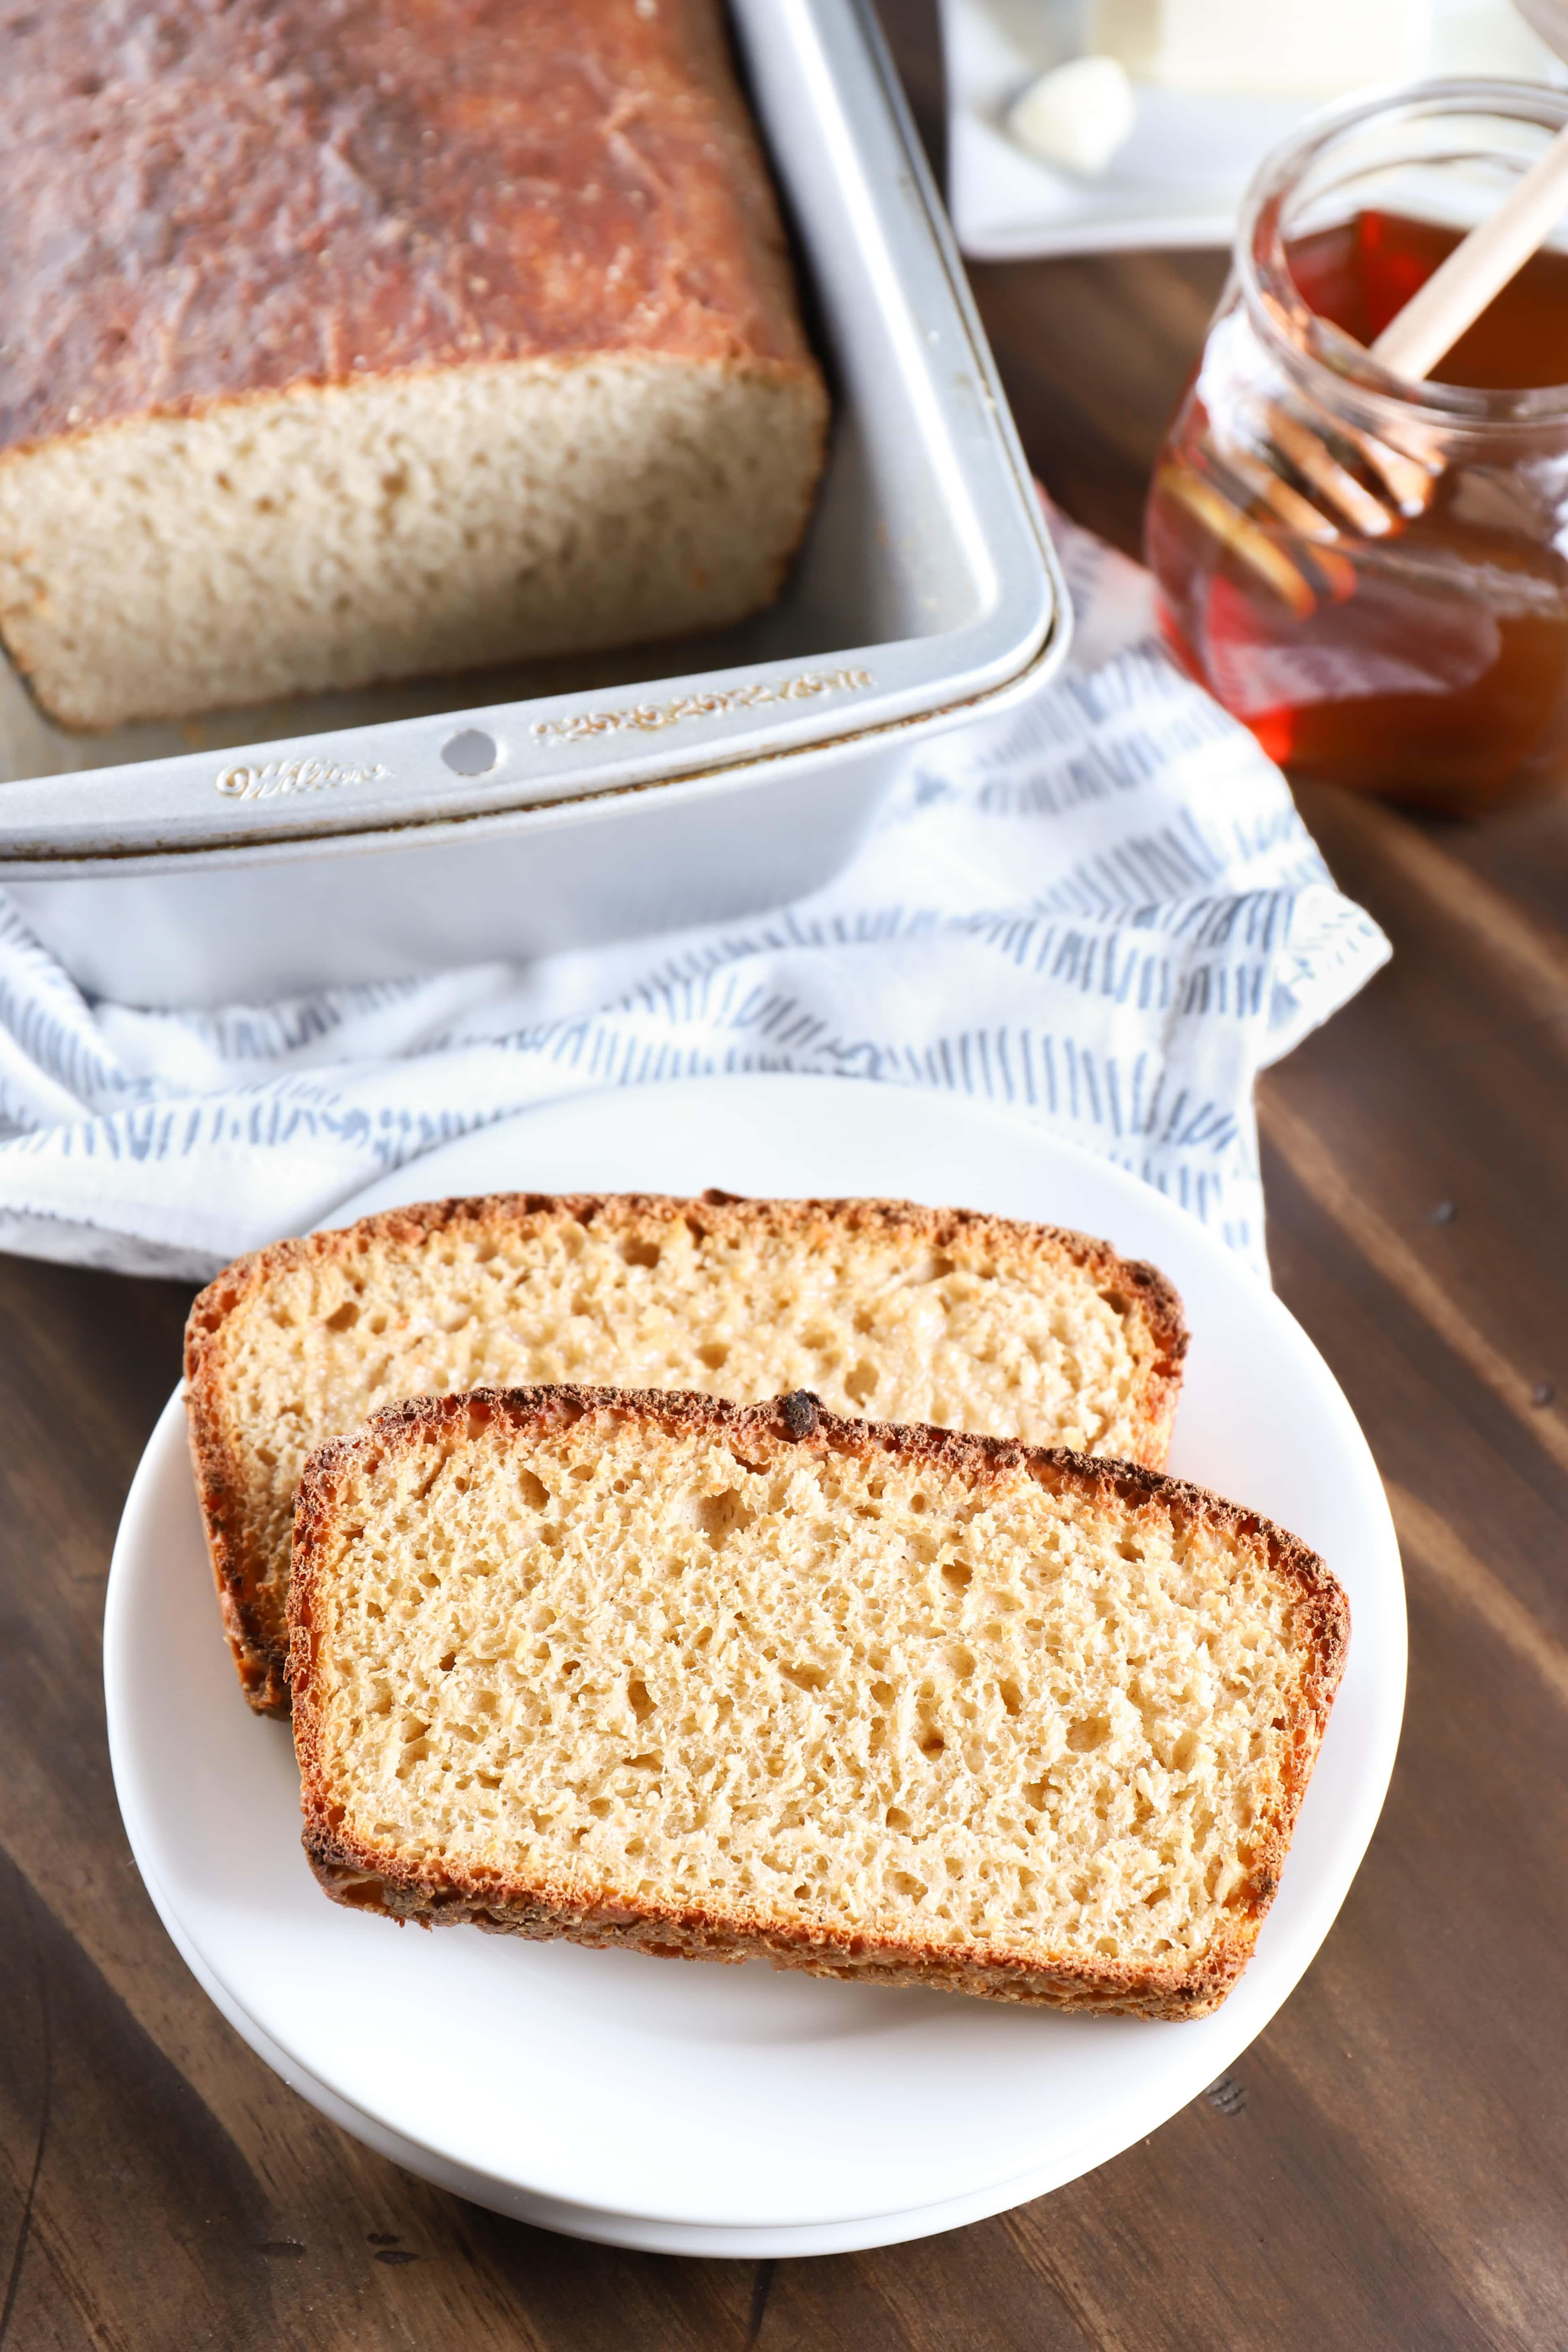 Toasted Sourdough English Muffin Bread on a plate. Recipe for bread from A Kitchen Addiction